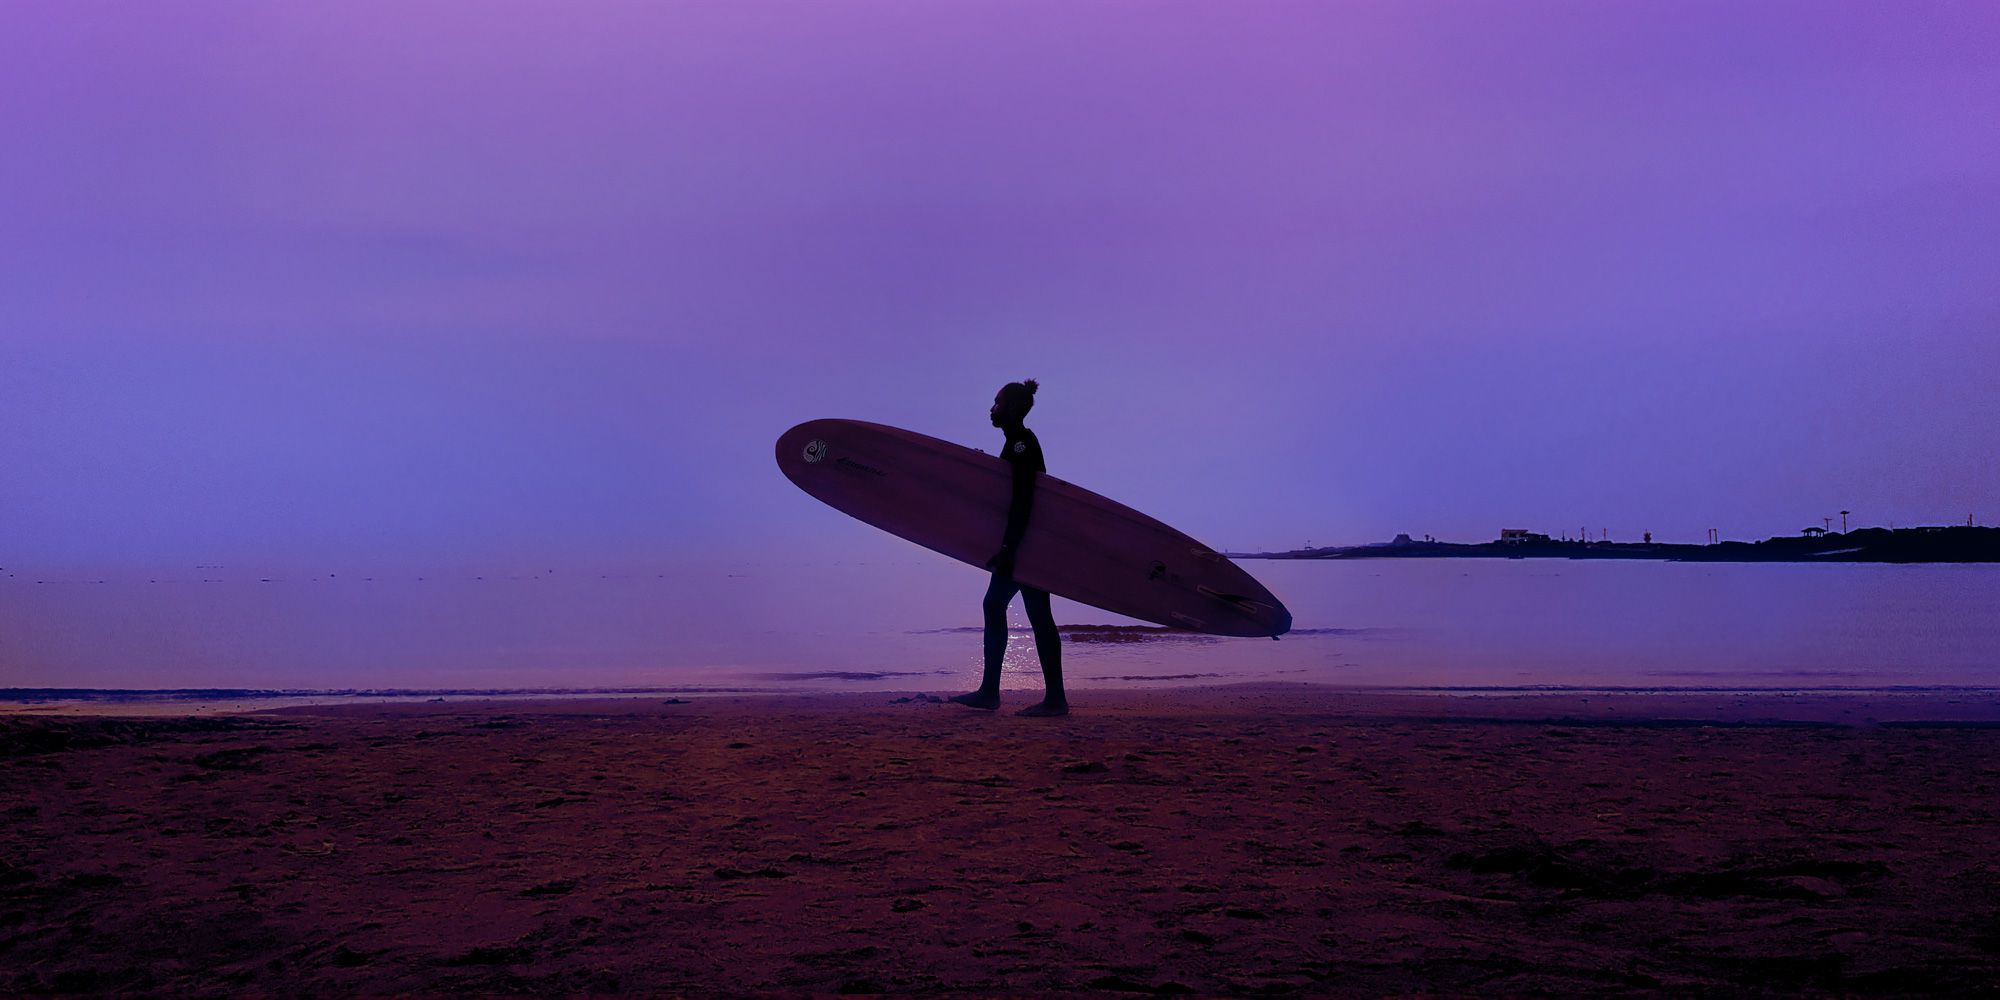 Galaxy Note8 in landscape mode with an image of a woman holding a surfboard against a dusky purple sky